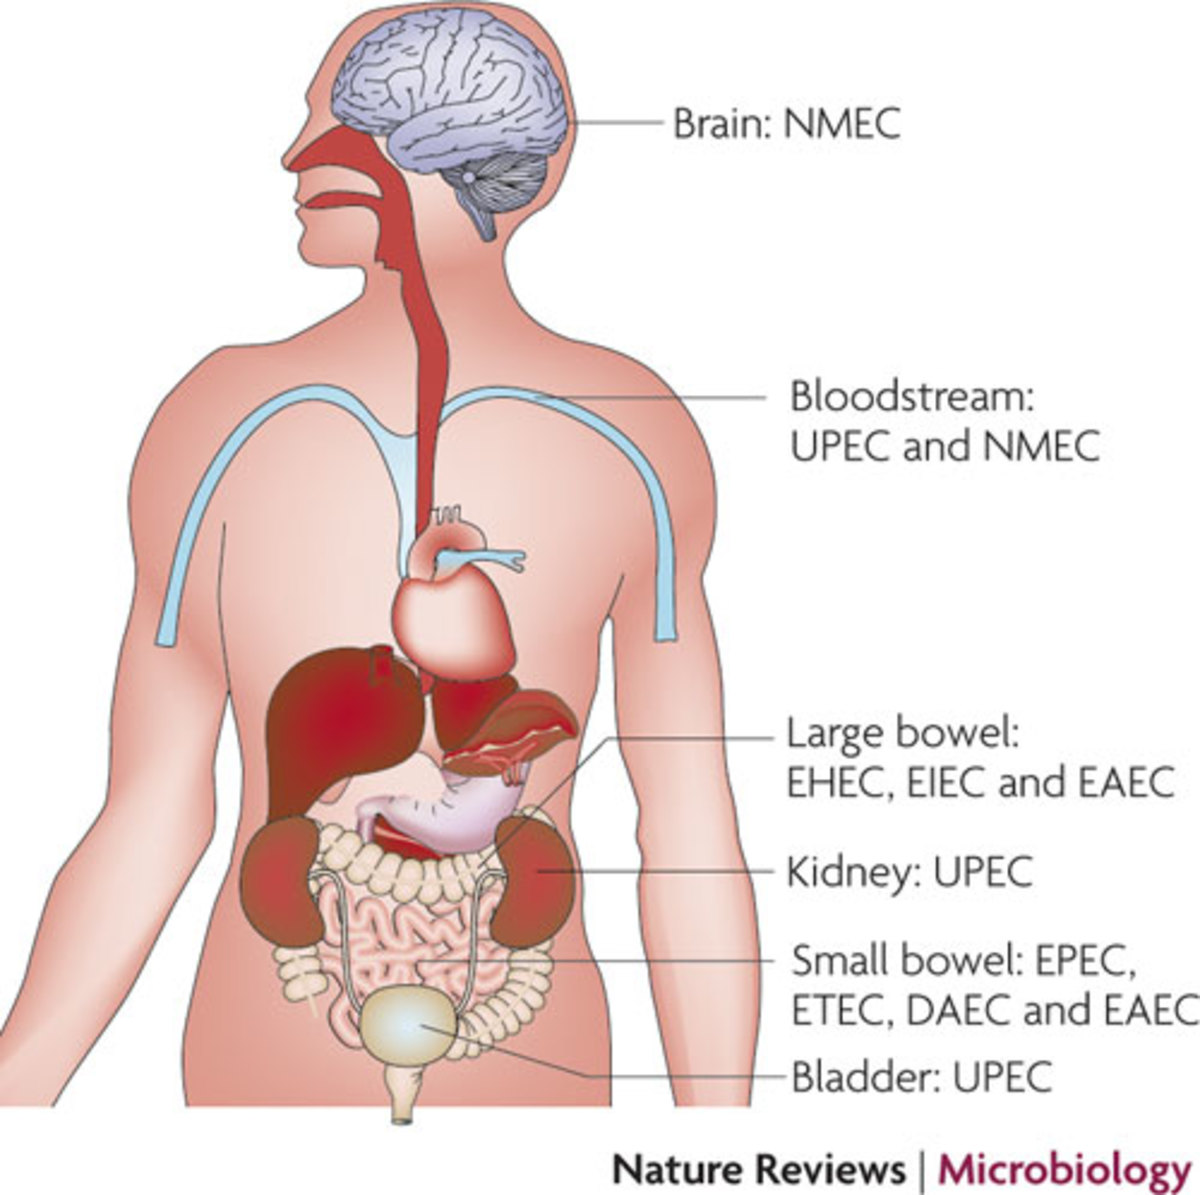 Areas in the body where different strains of E Coli can start an infection.